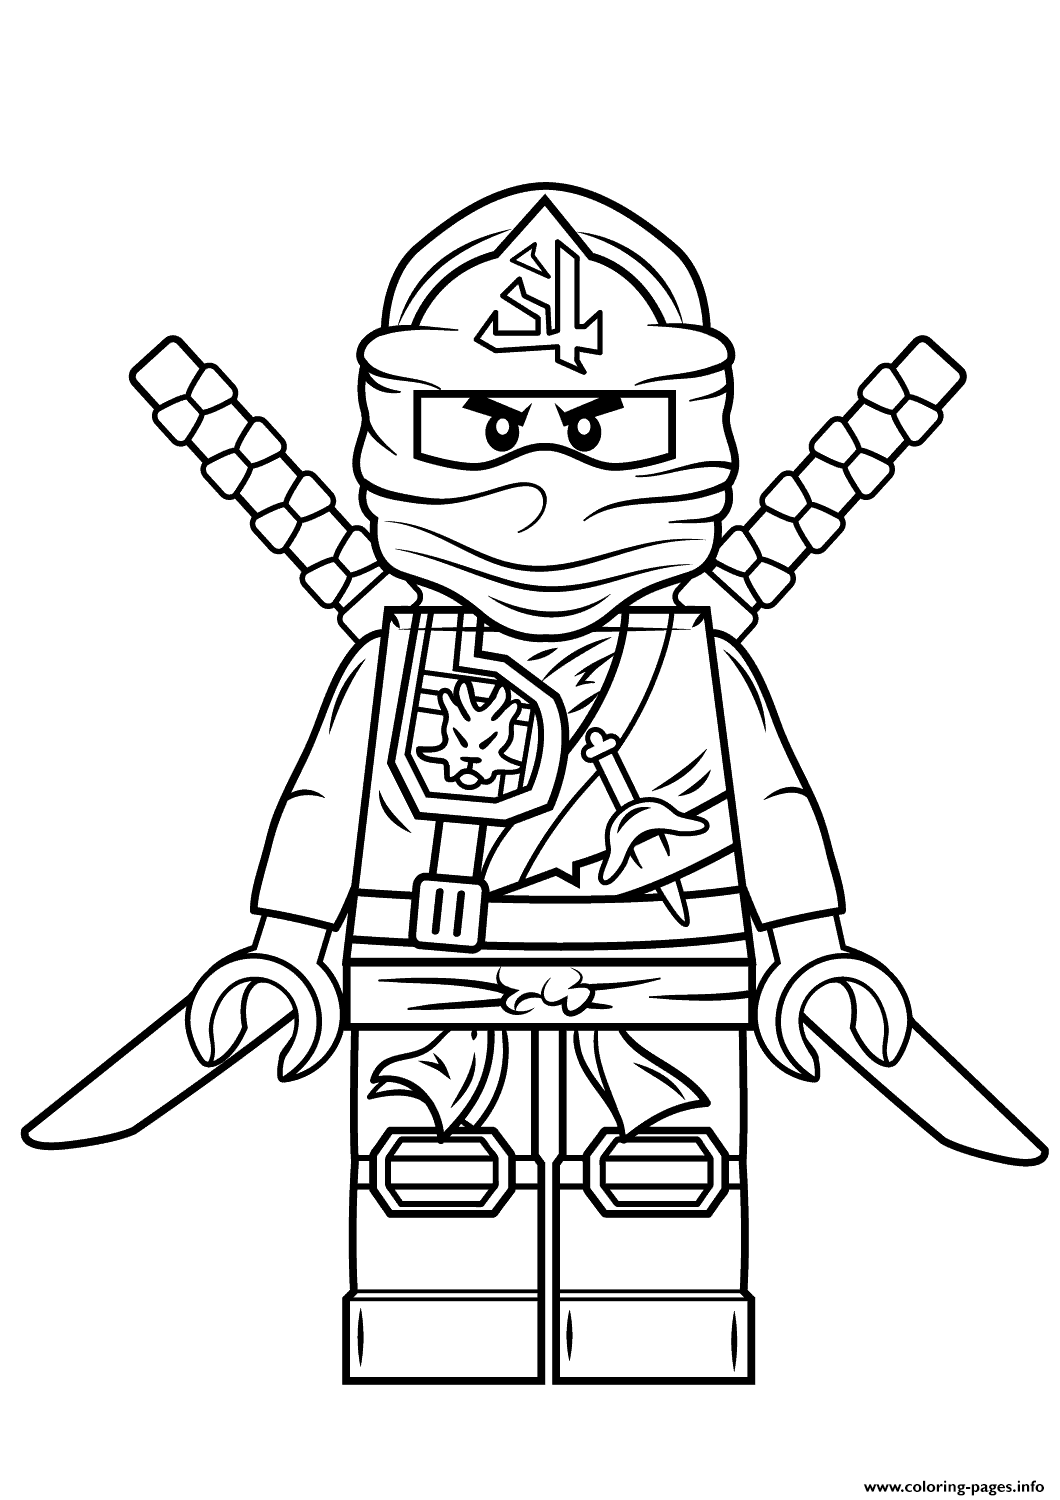 ninjago pictures to print free printable ninjago coloring pages for kids lego to ninjago pictures print